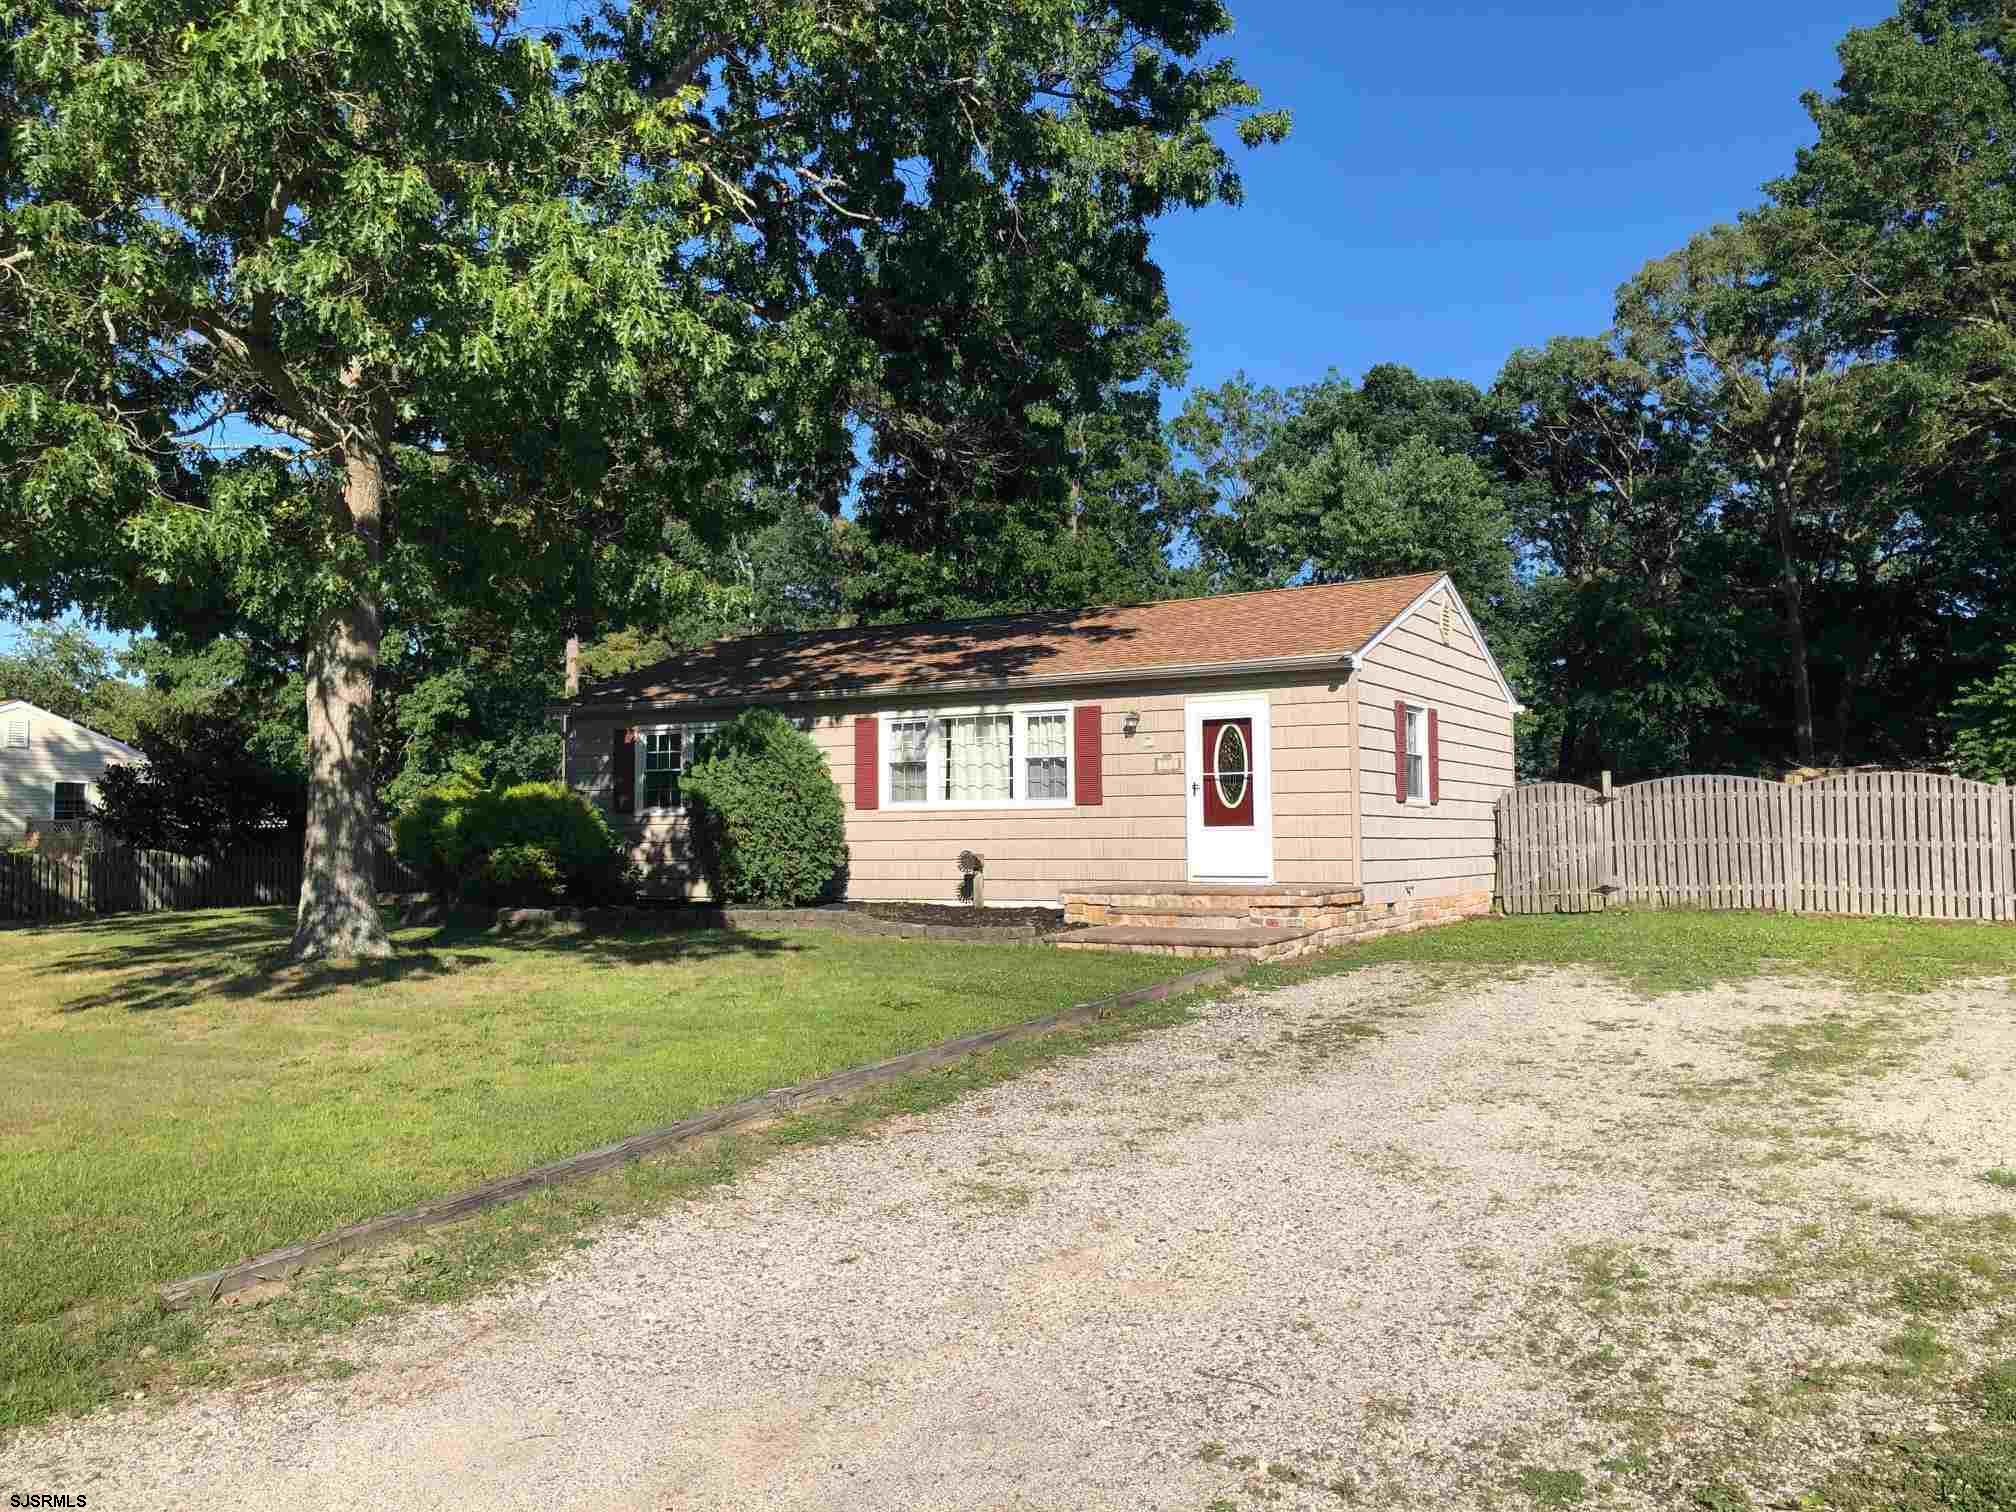 This Is It ! Lovely 3 Bedroom Ranch on oversized 117.75 x 140 Lot ! Features include upgraded Cedar